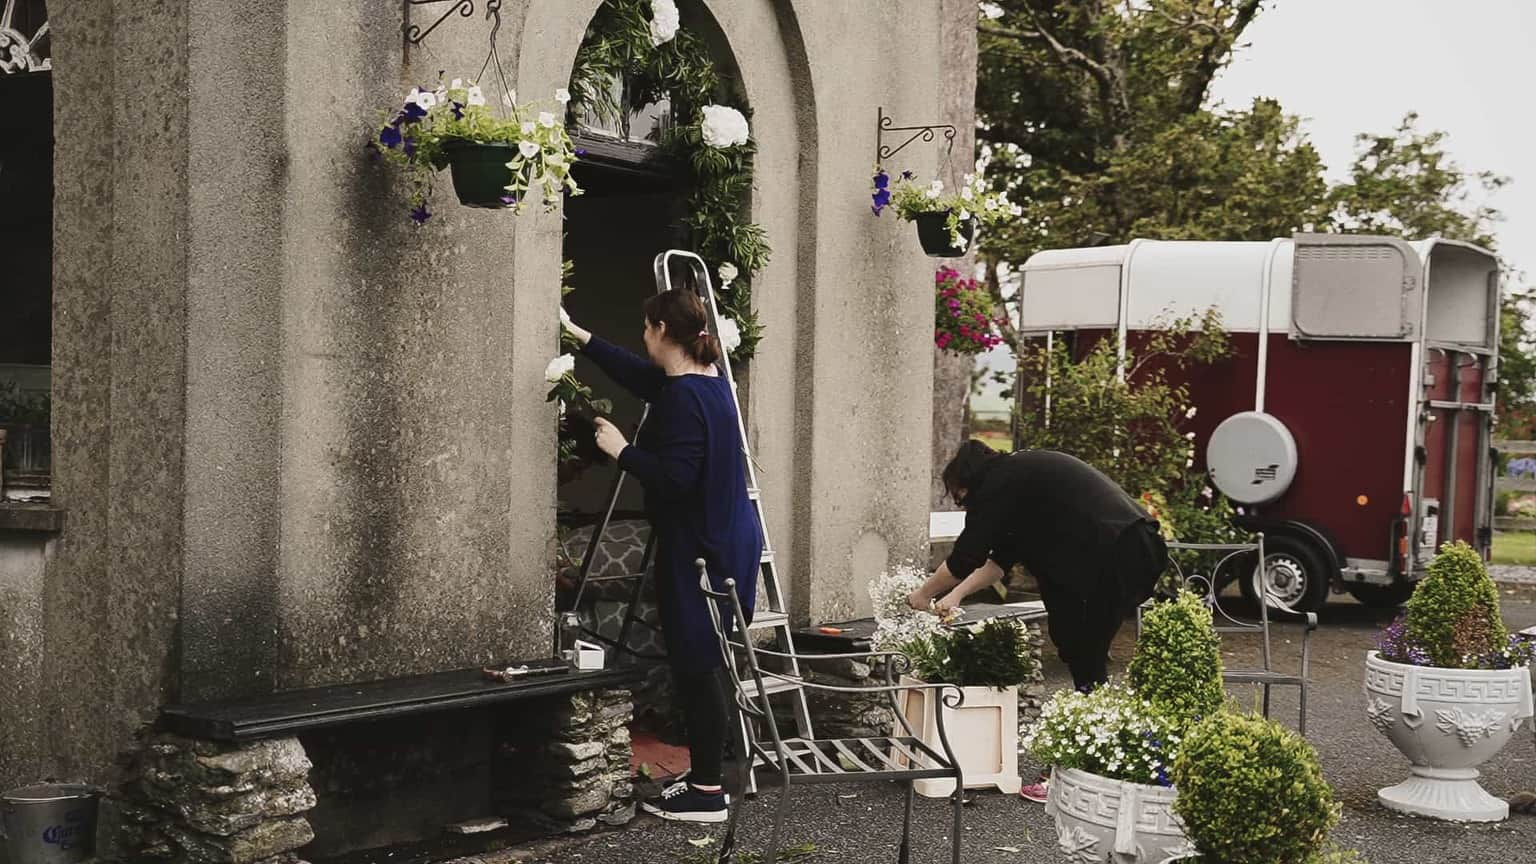 Decorating Ballintaggart house venue before wedding day